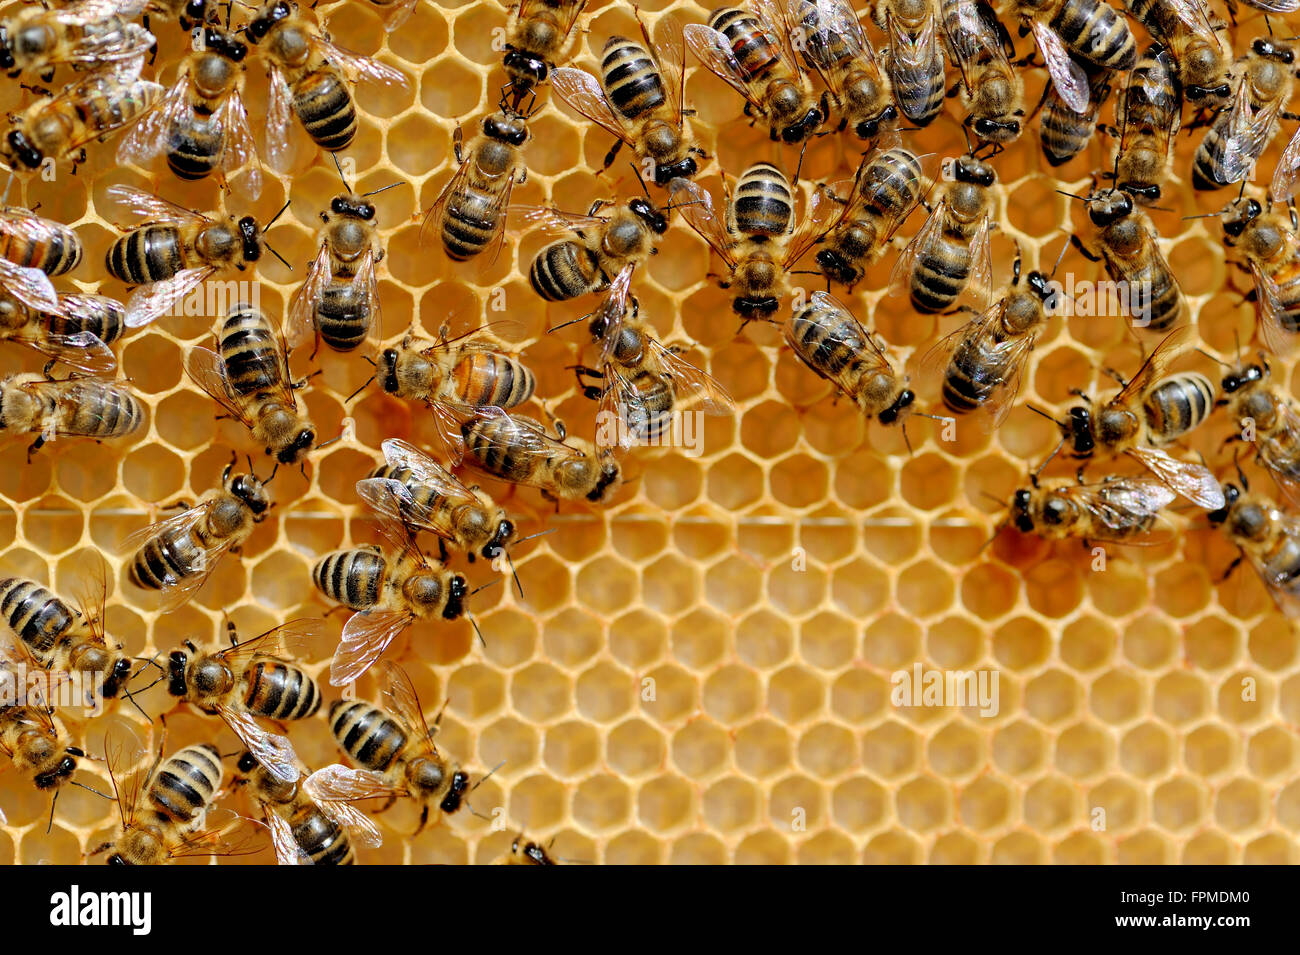 Close up view of the working bees on honey cells - Stock Image